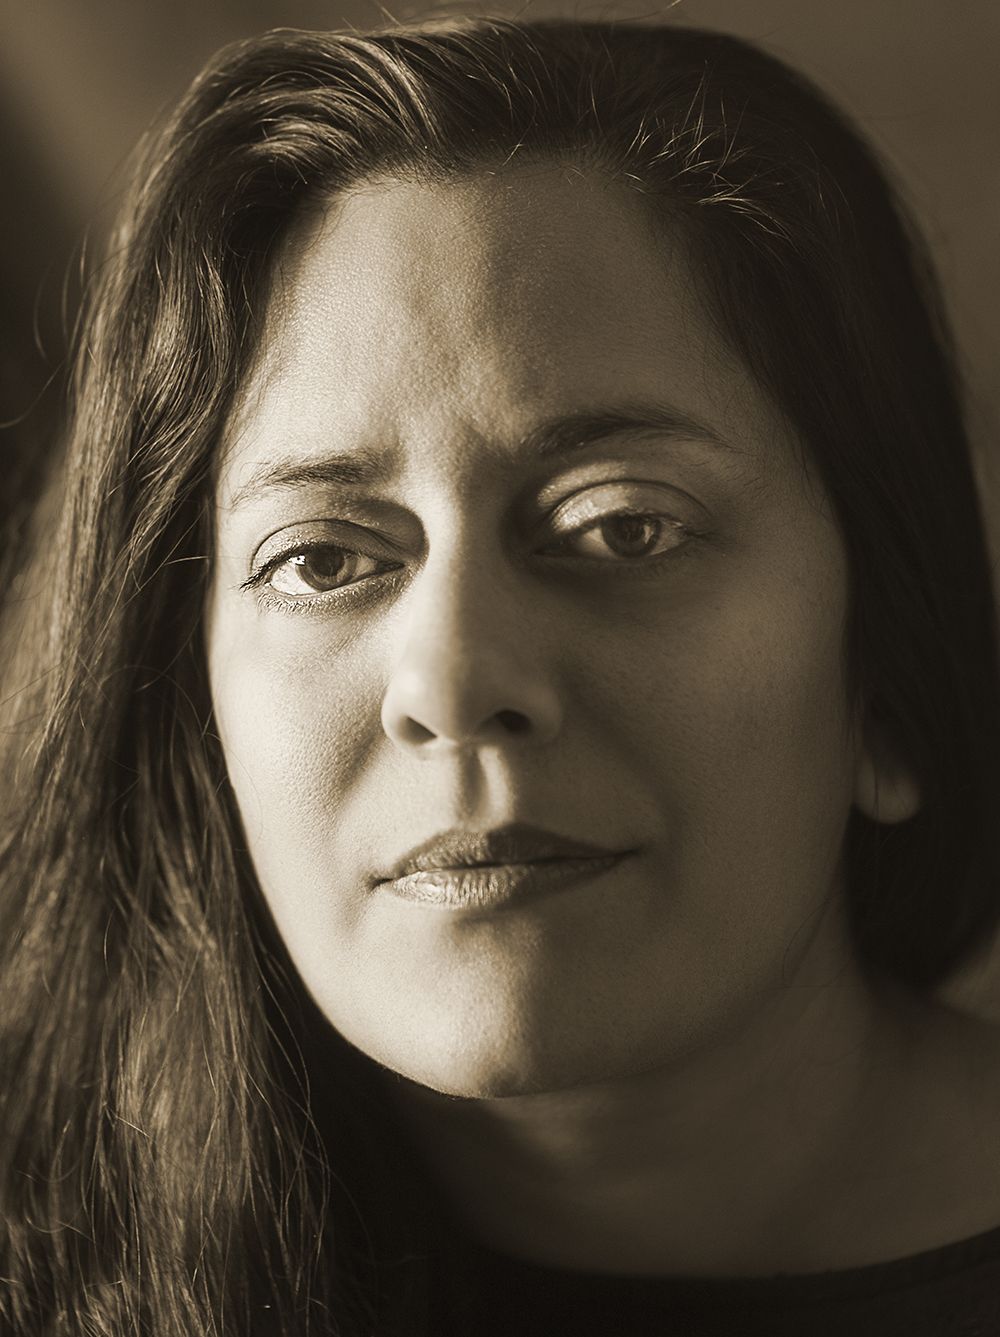 detail: Anjali Gupta, Director of Sala Diaz gallery